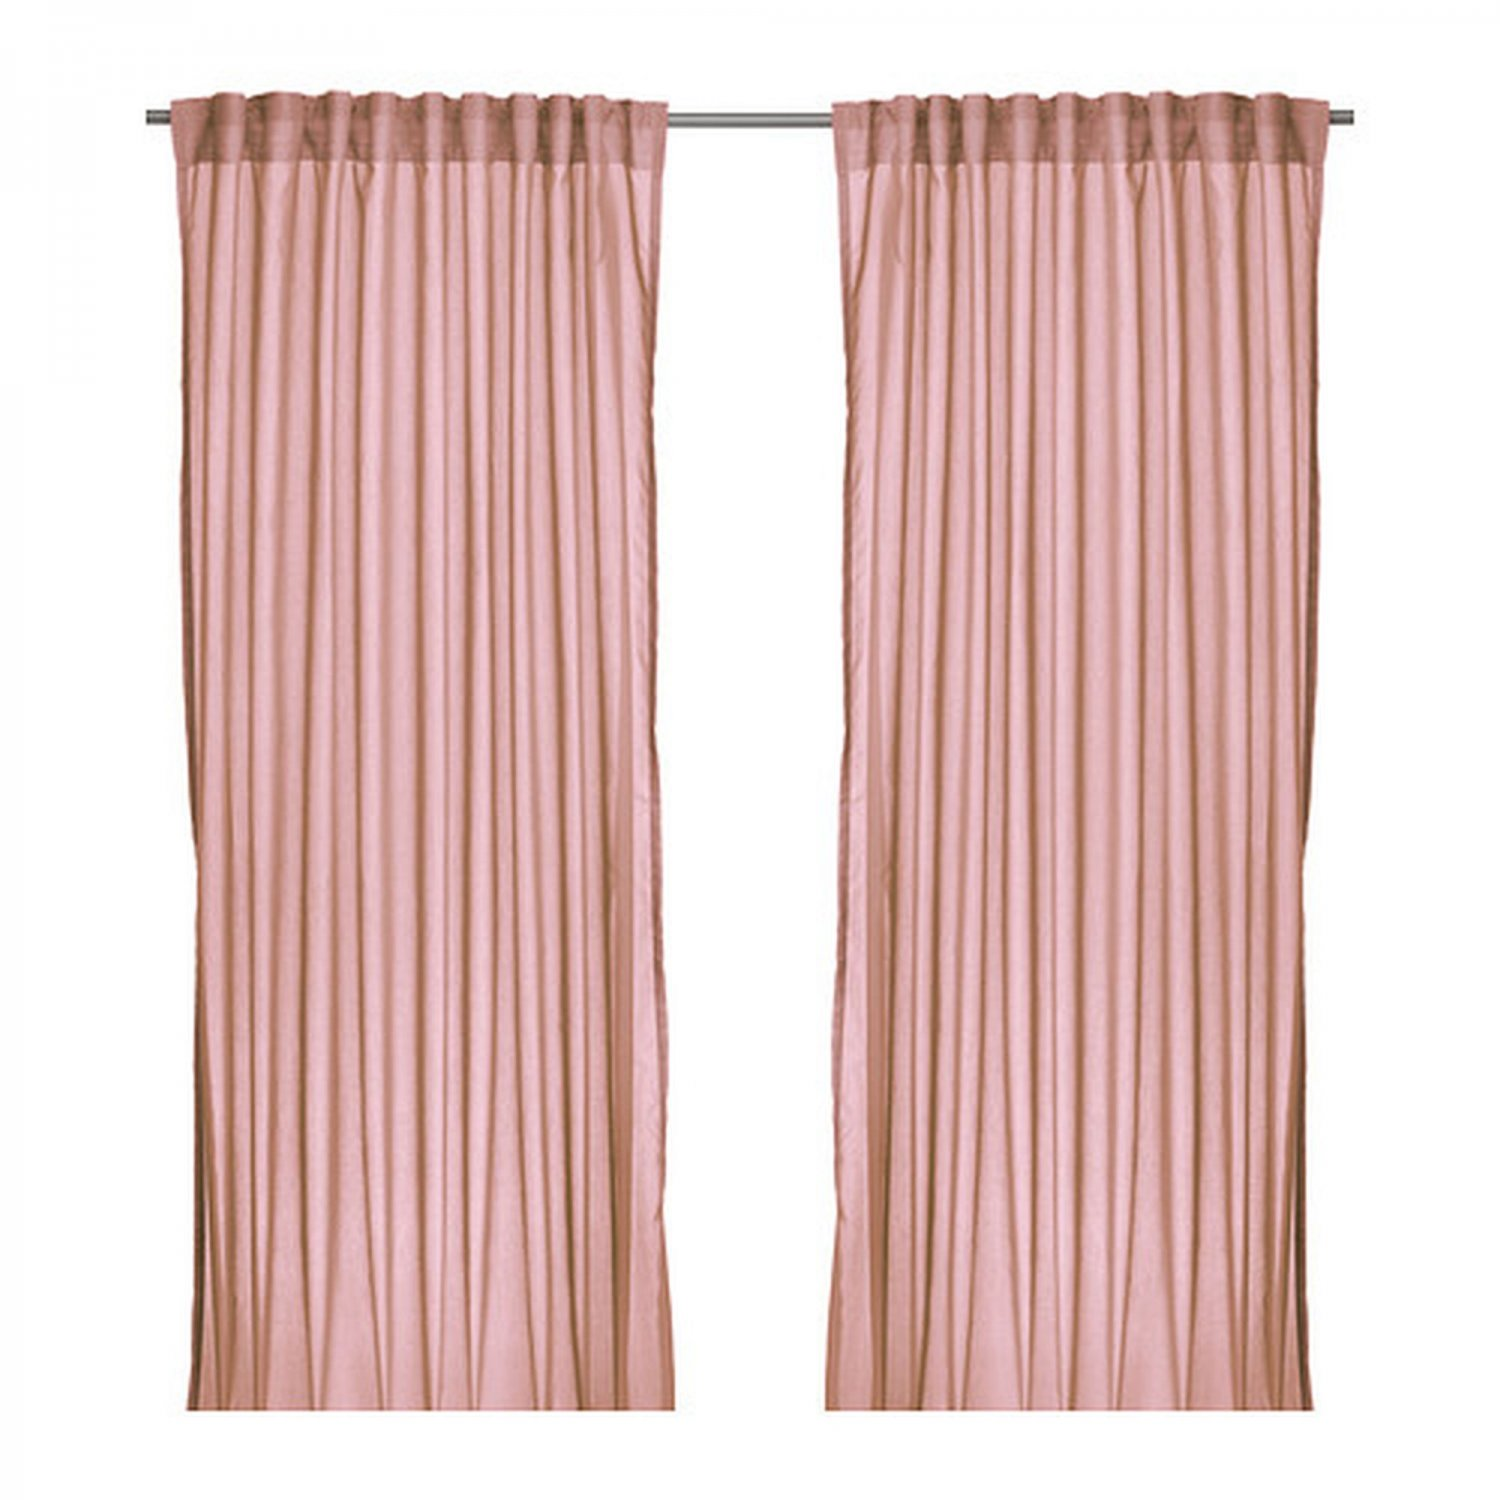 Ikea Vivan Curtains Drapes Pink 2 Panels Pale Shell Blush